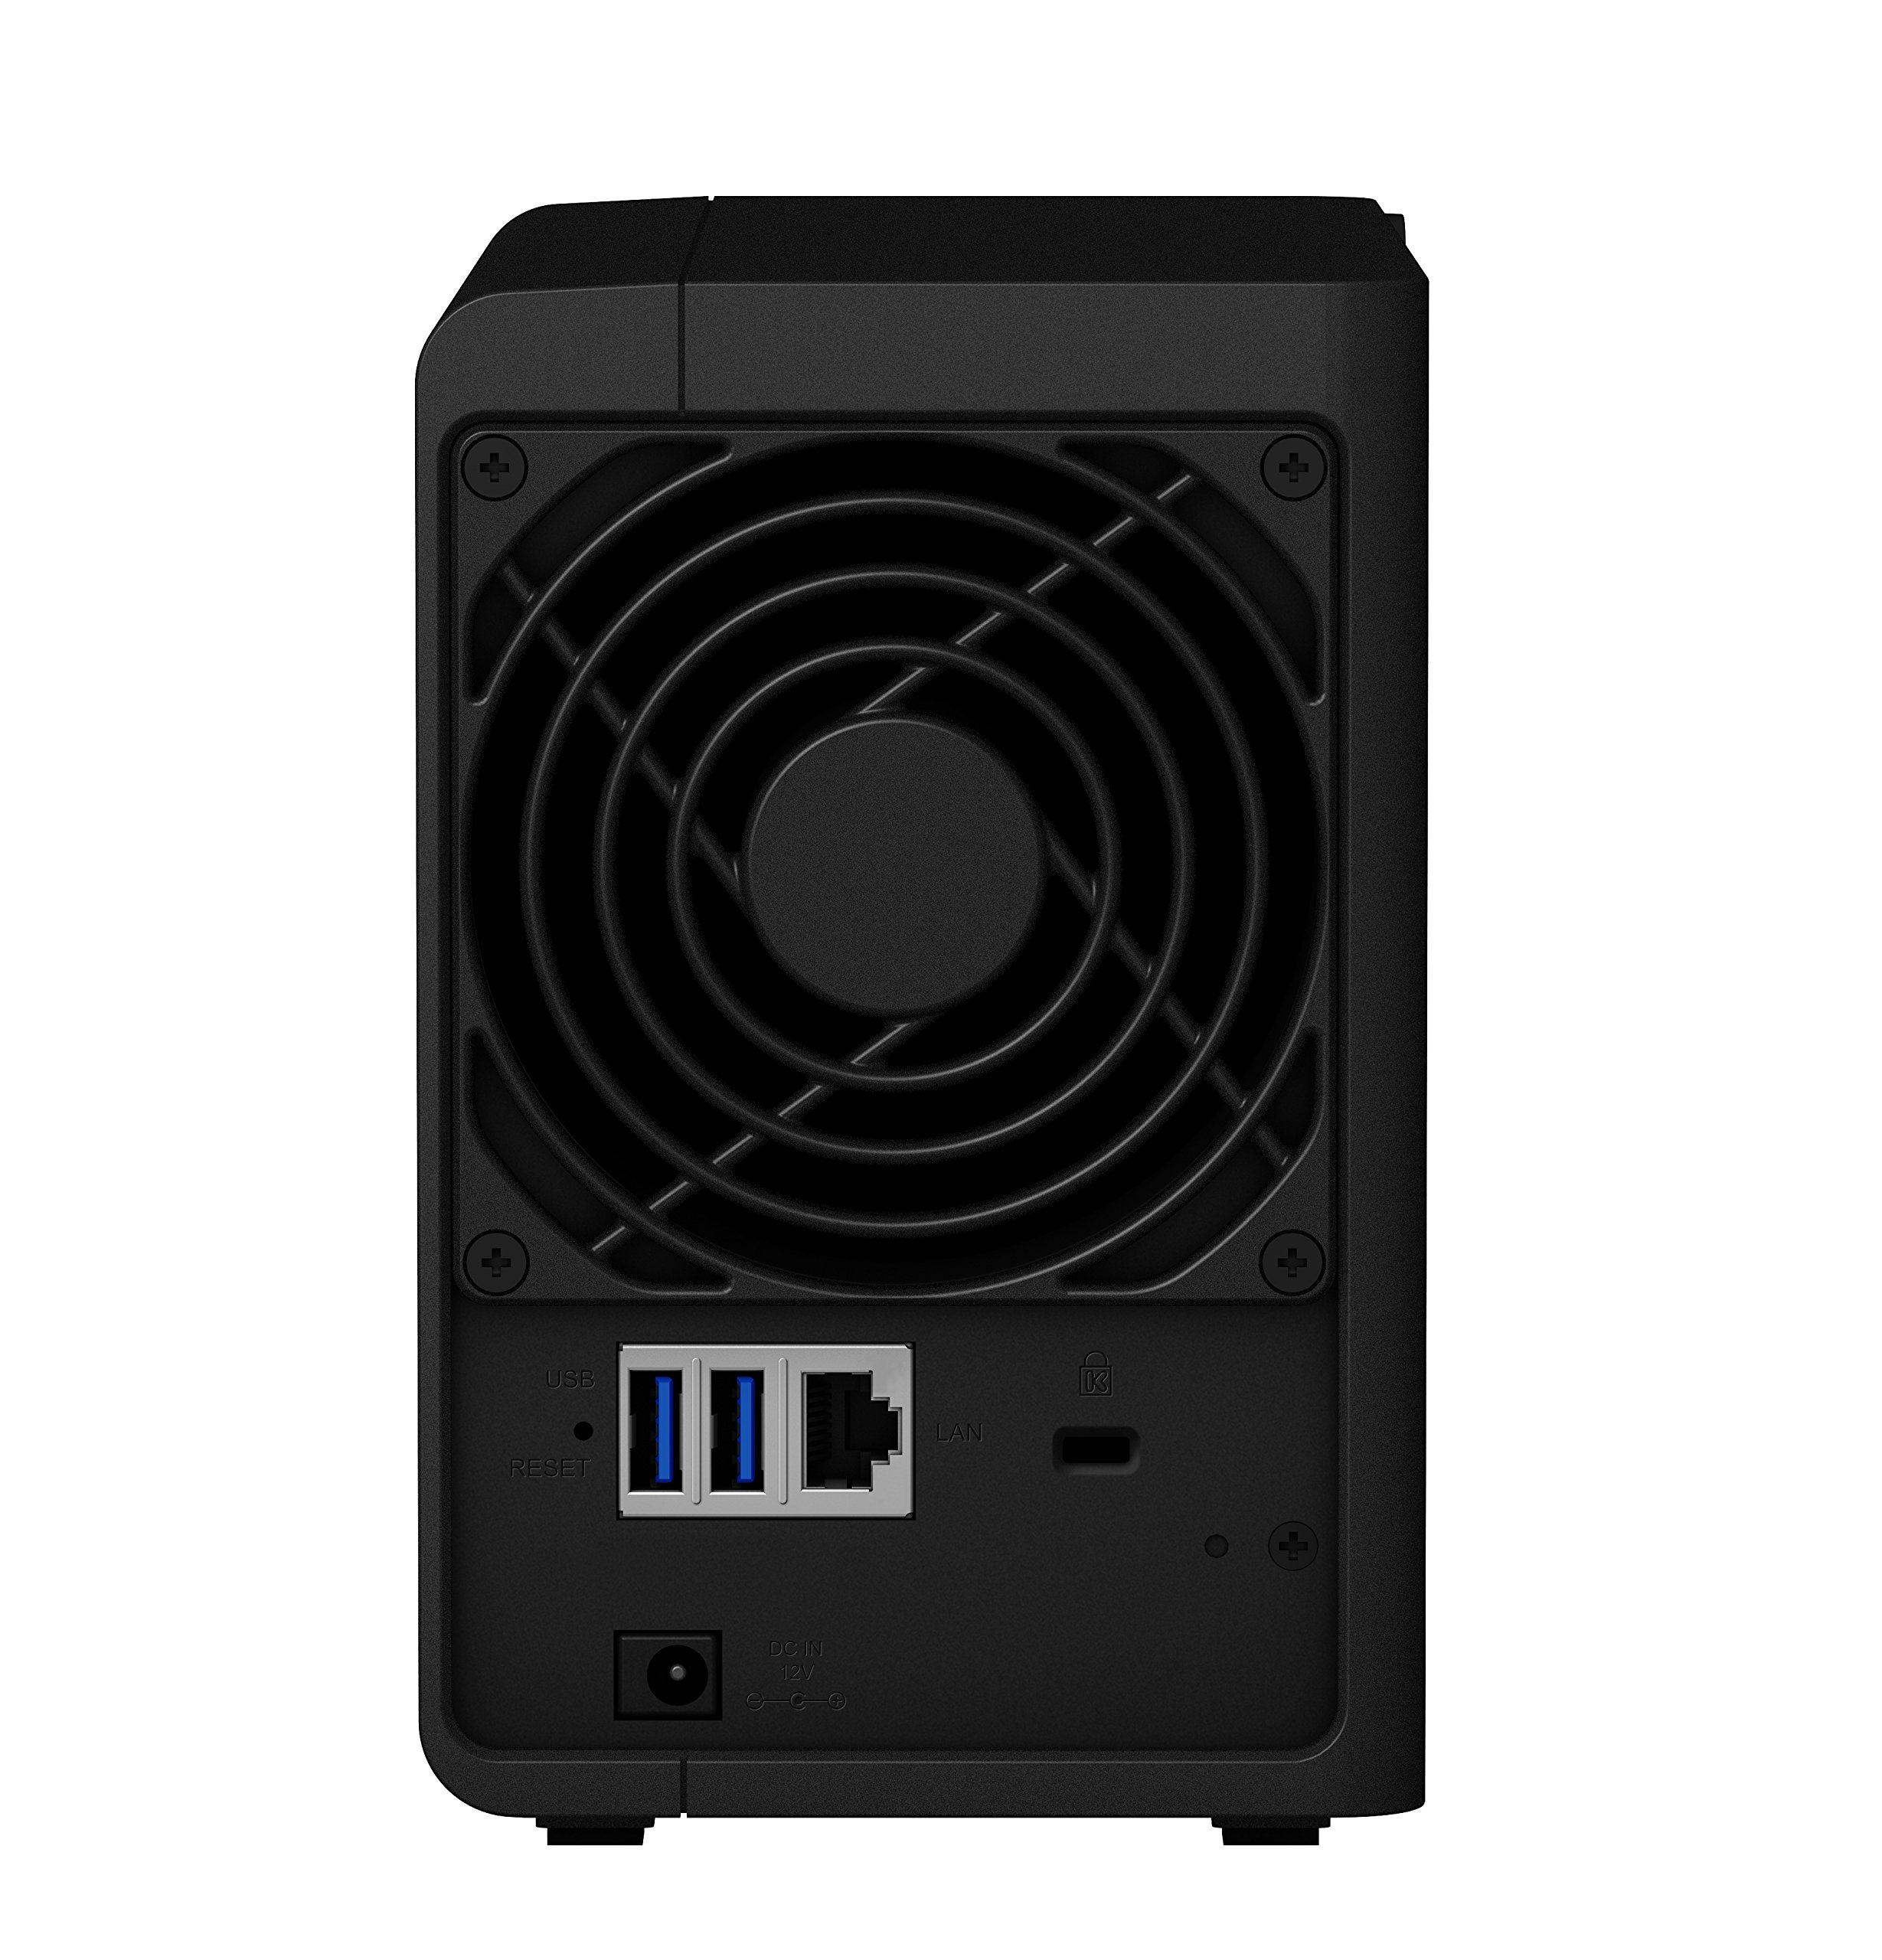 Synology 2 bay NAS DiskStation DS218 (Diskless) by Synology (Image #3)